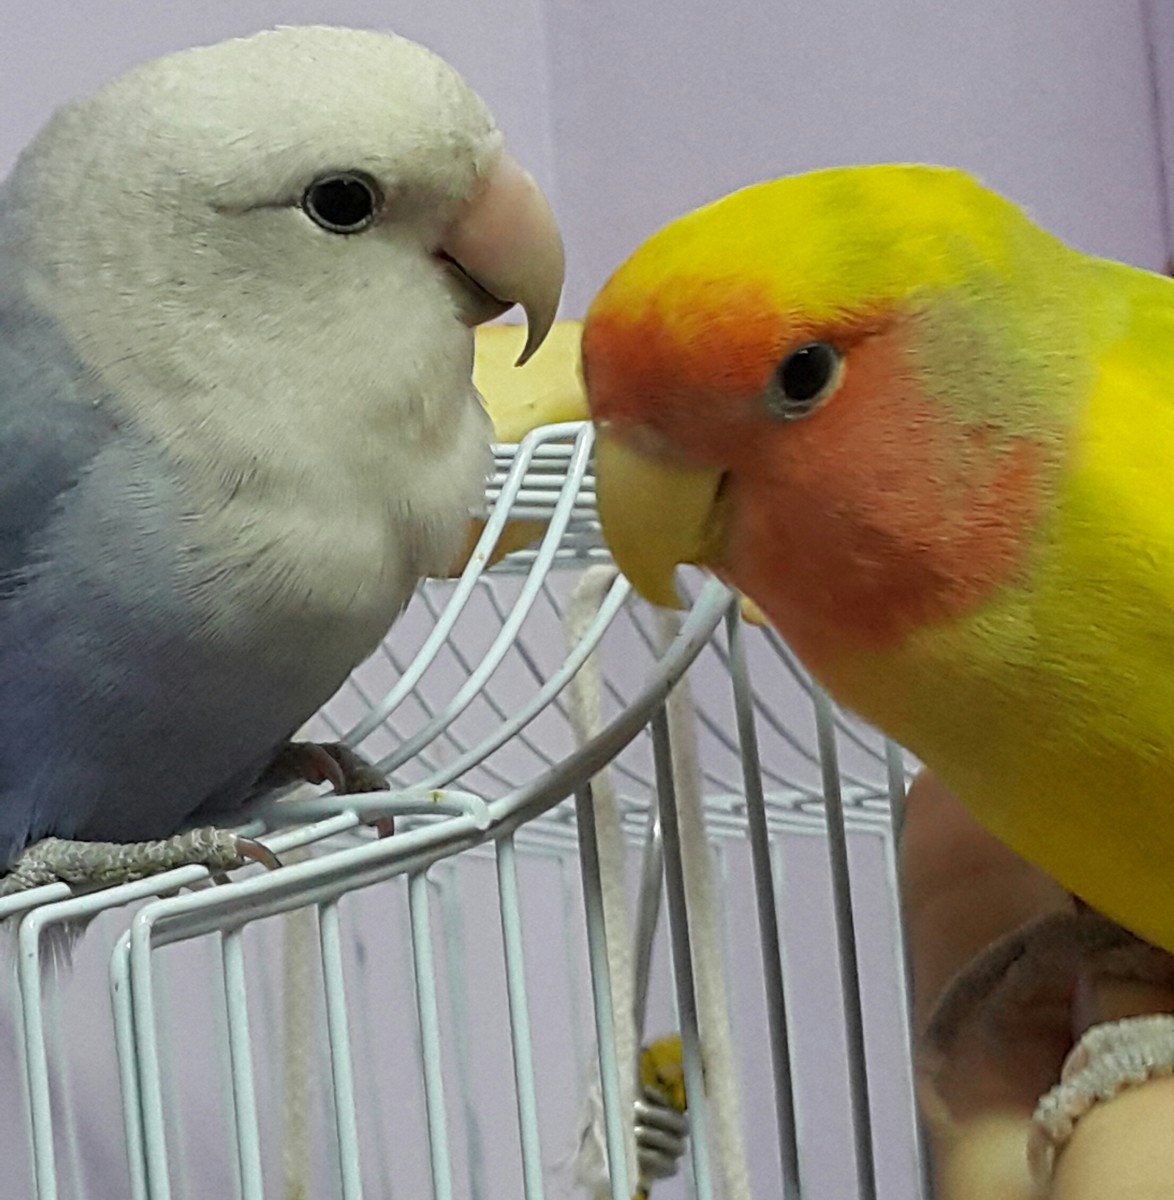 Picture showing a peach faced male lovebird Mumu with his mate Lulu, who is a white-faced violet roseicollis peach faced female lovebird.